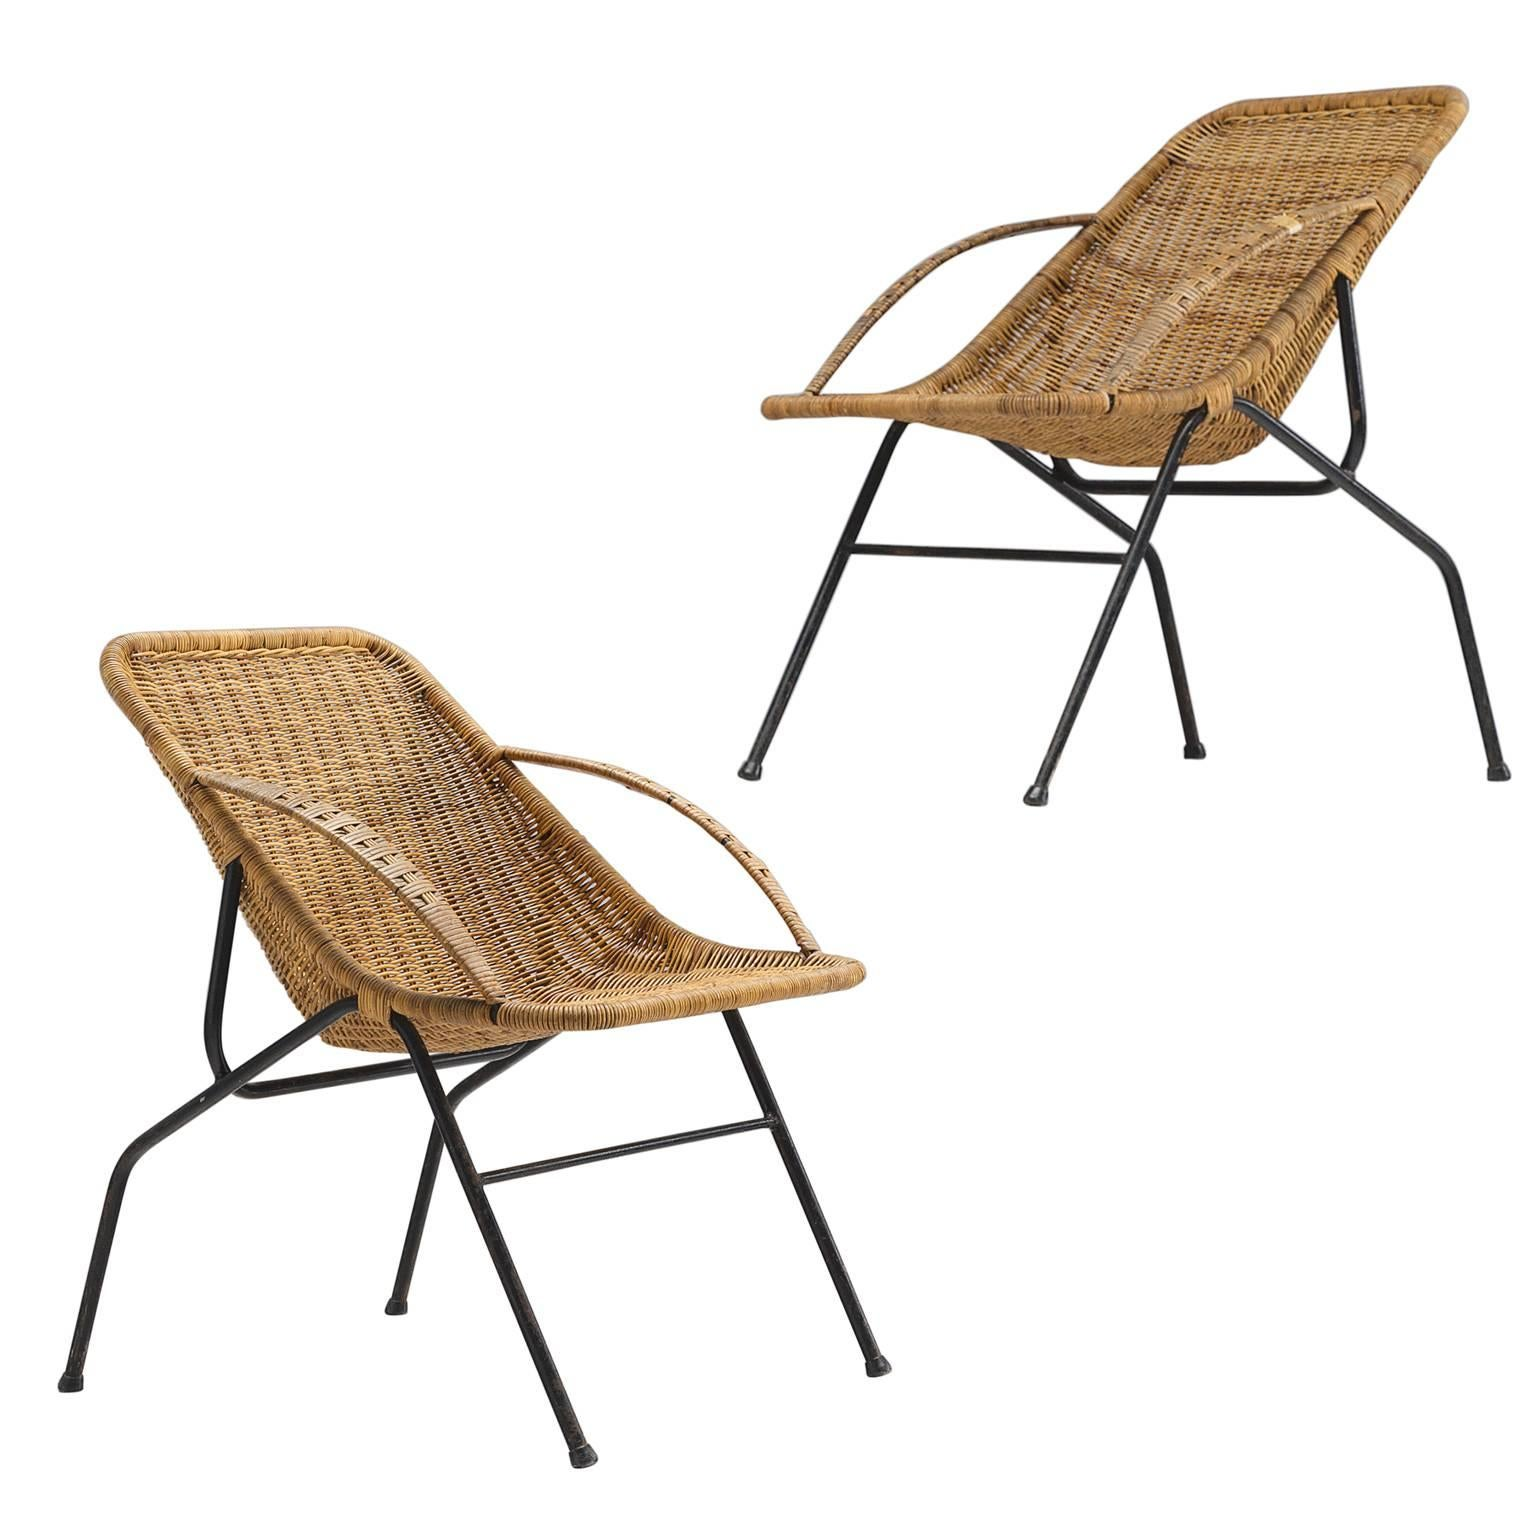 French Woven Cane Chairs, 1950s